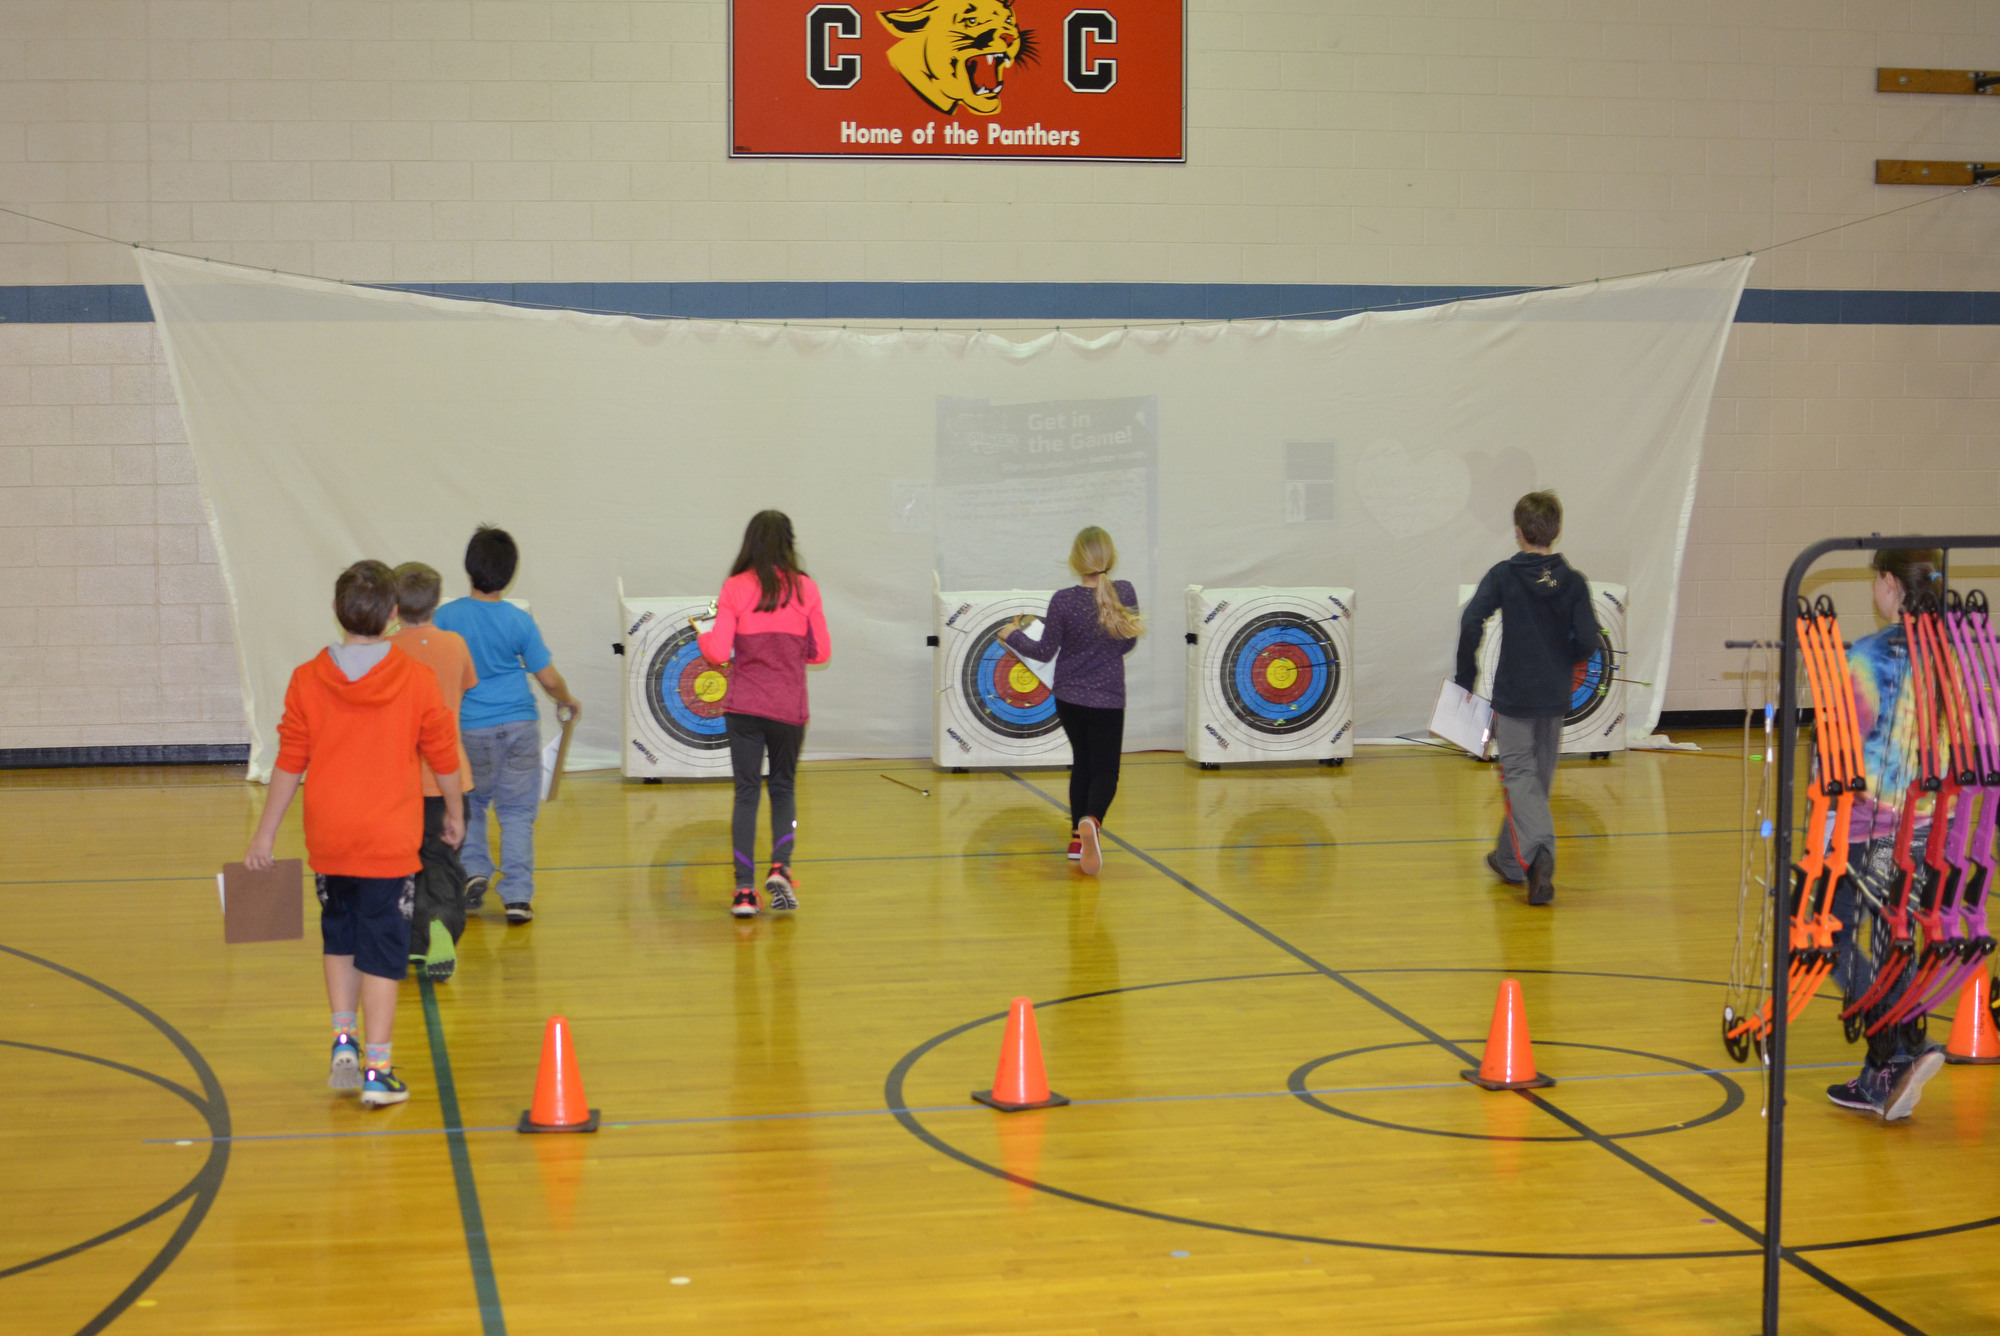 Cherry Creek Elementary School archers approach their targets, eager to check their scores.